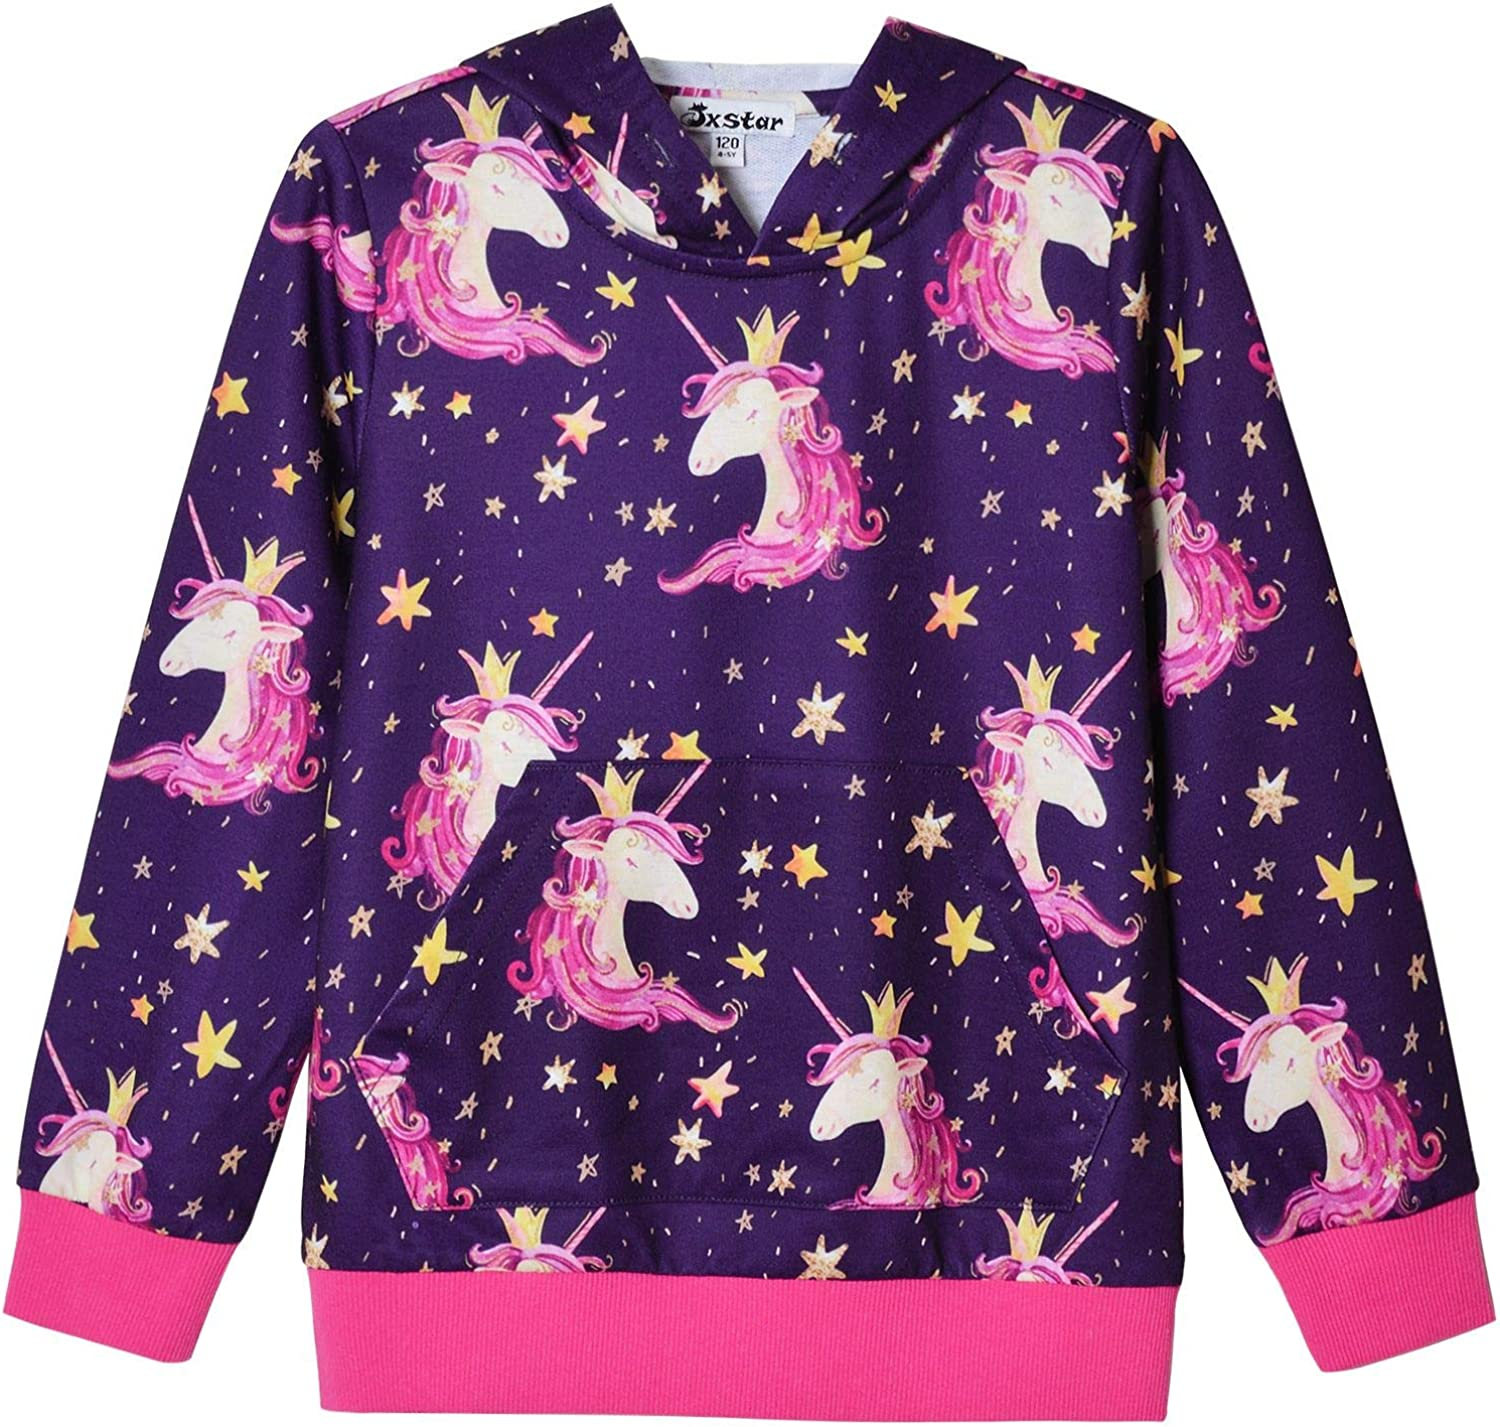 Jxstar Hoodie for Girls Unicorn Cat Sweatshirt Pullover Shirts Clothes for Kids: Clothing